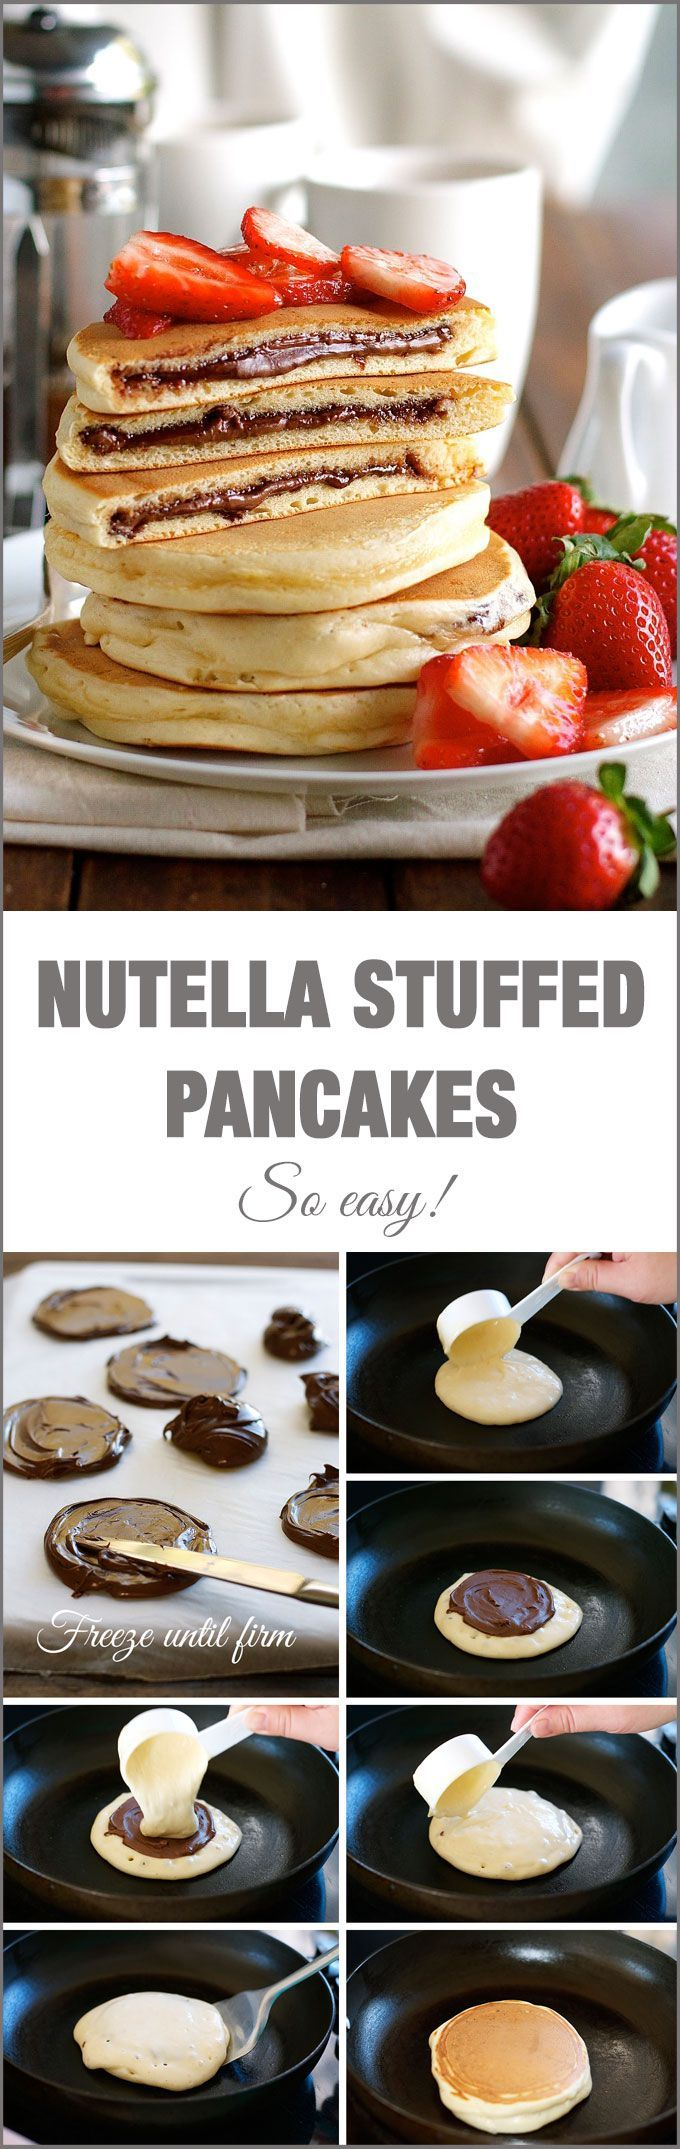 Mmmm, these are making us hungry! Treat yourself and your loved ones to some yummy Nutella stuffed pancakes this Sunday.